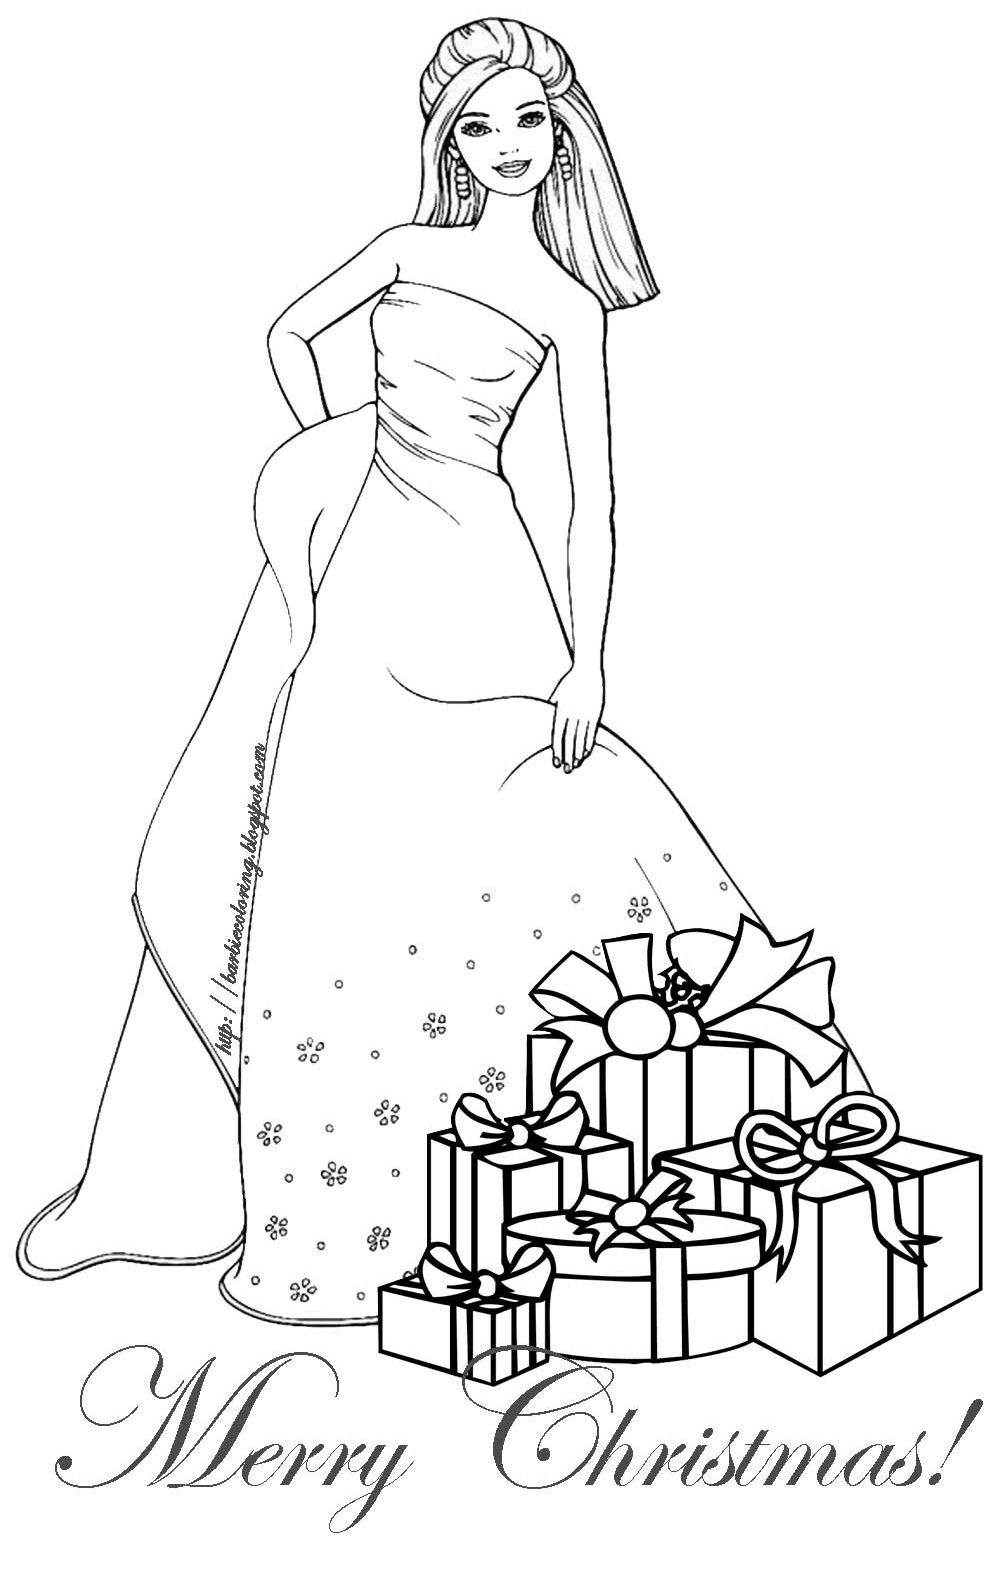 Barbie Christmas Coloring Pages To Print With BARBIE COLORING PAGES CHRISTMAS